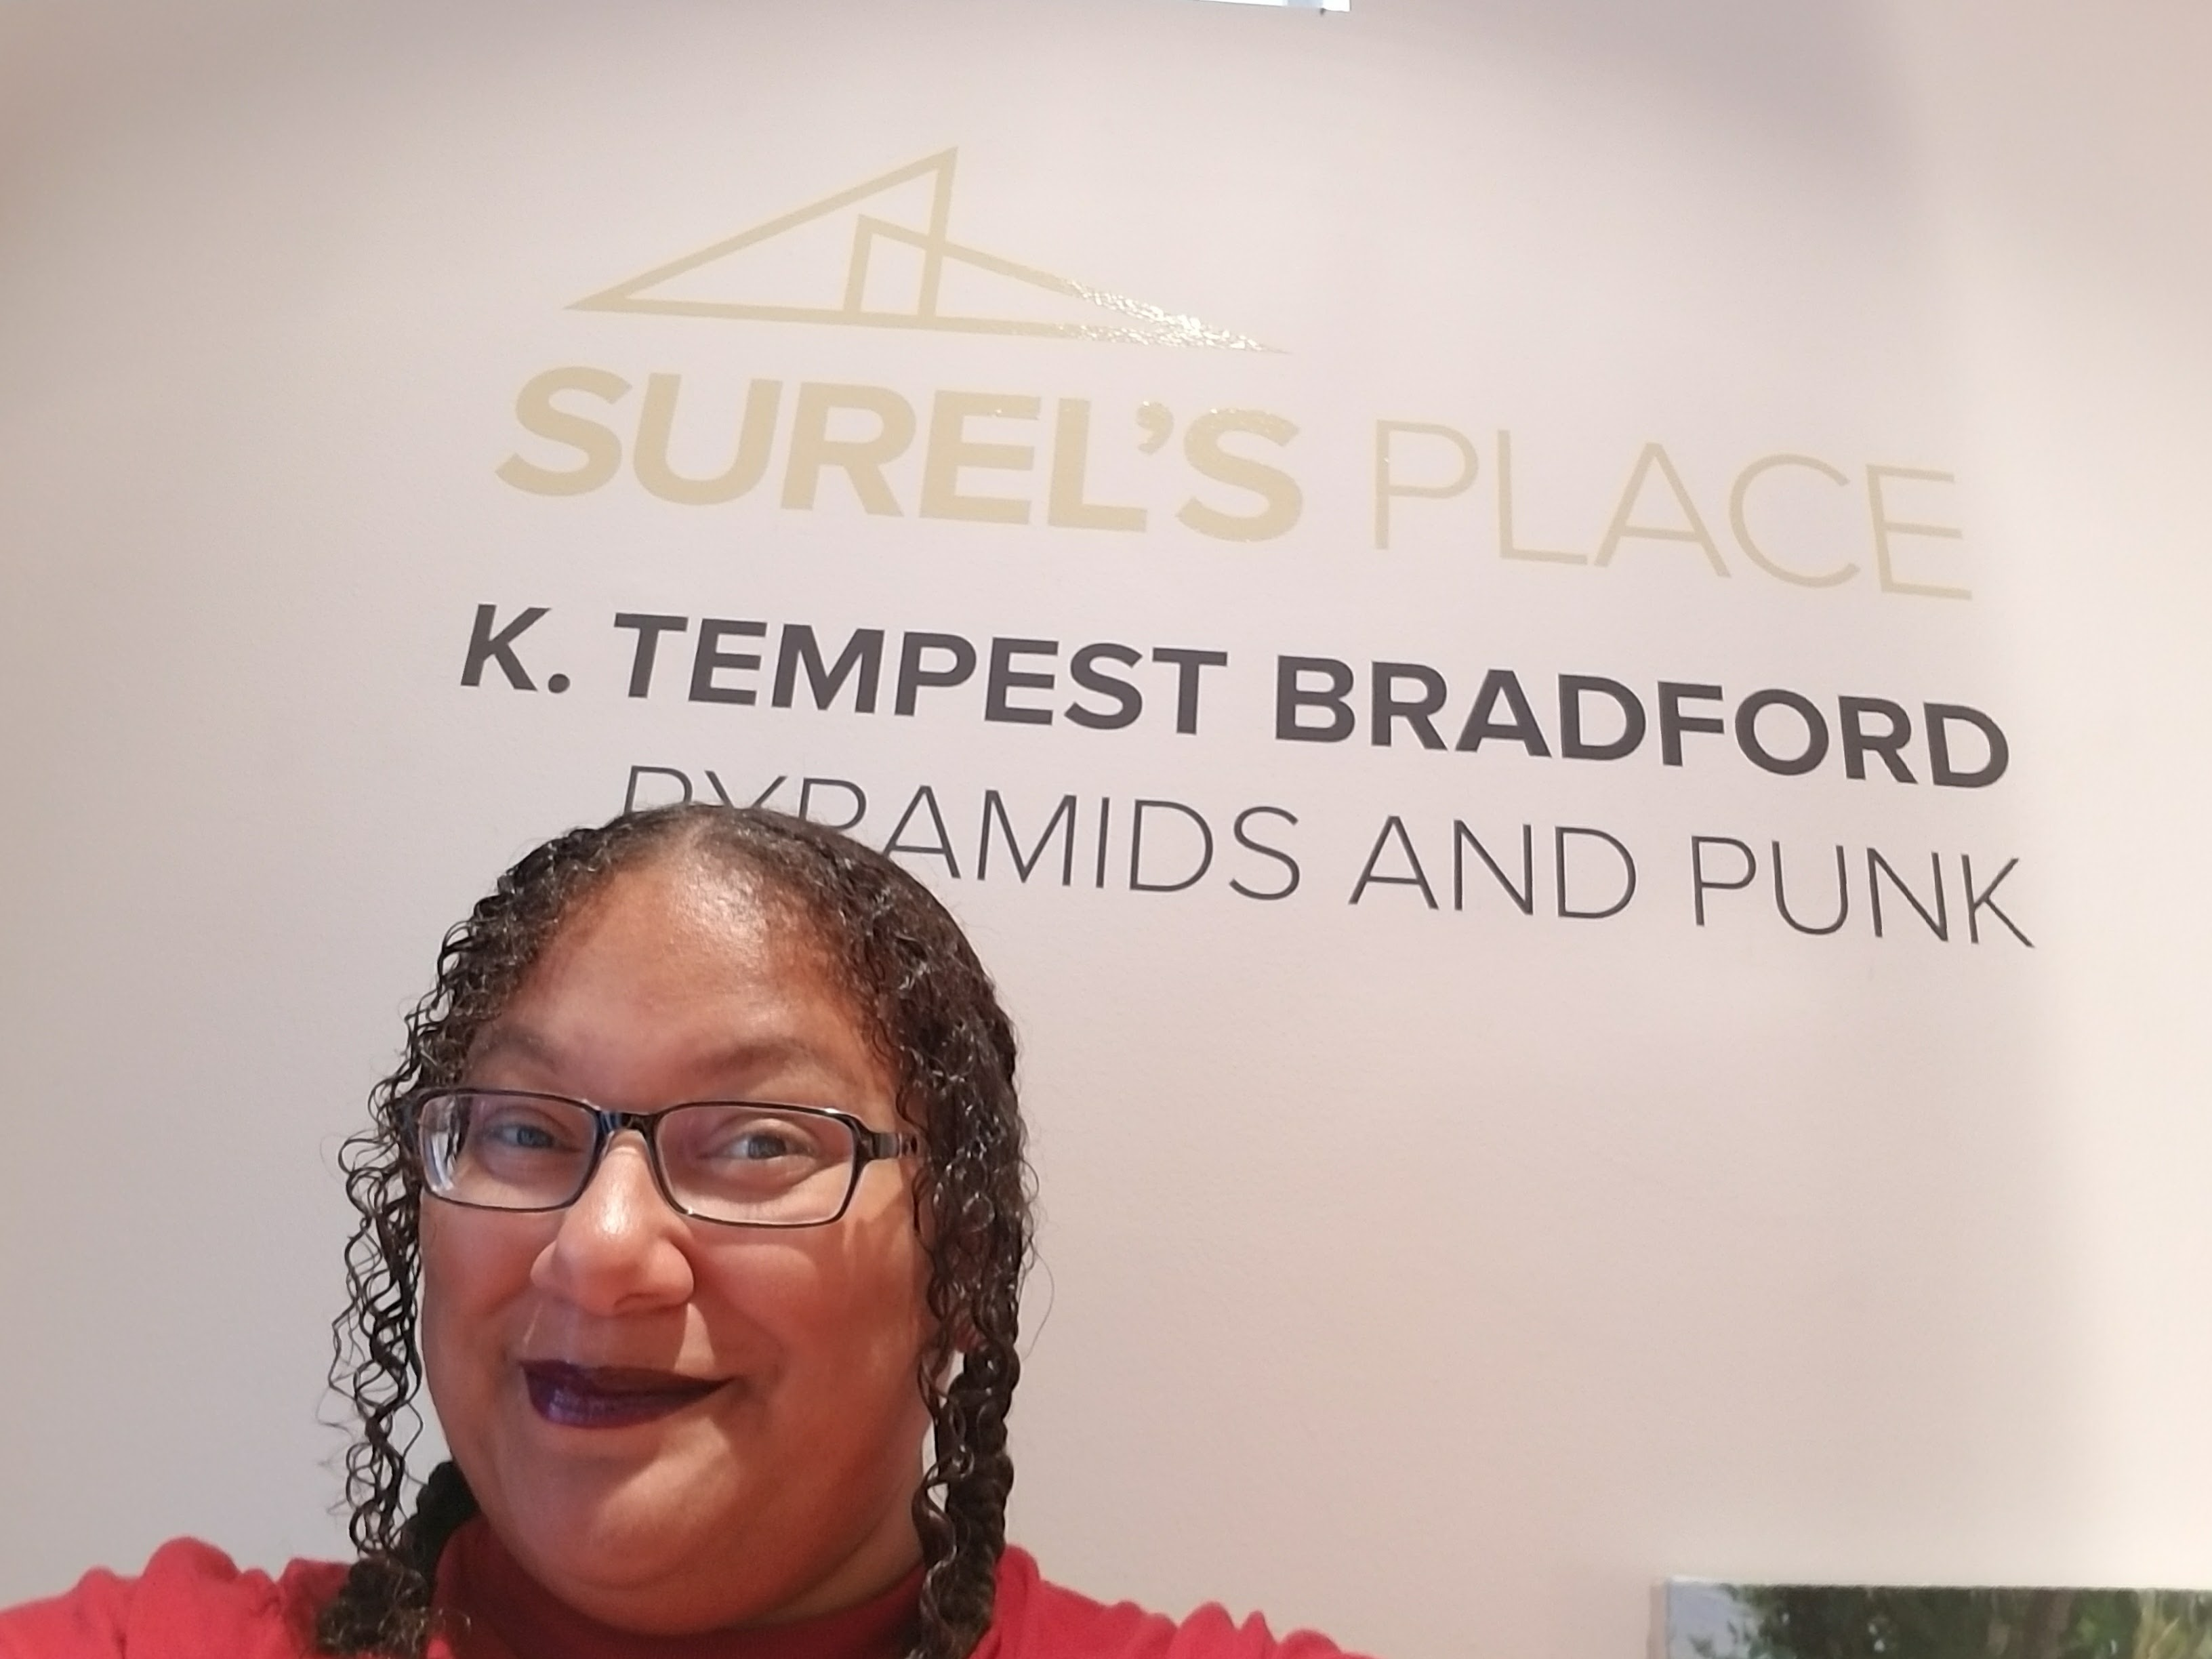 Tempest in front of Surel's Place sign